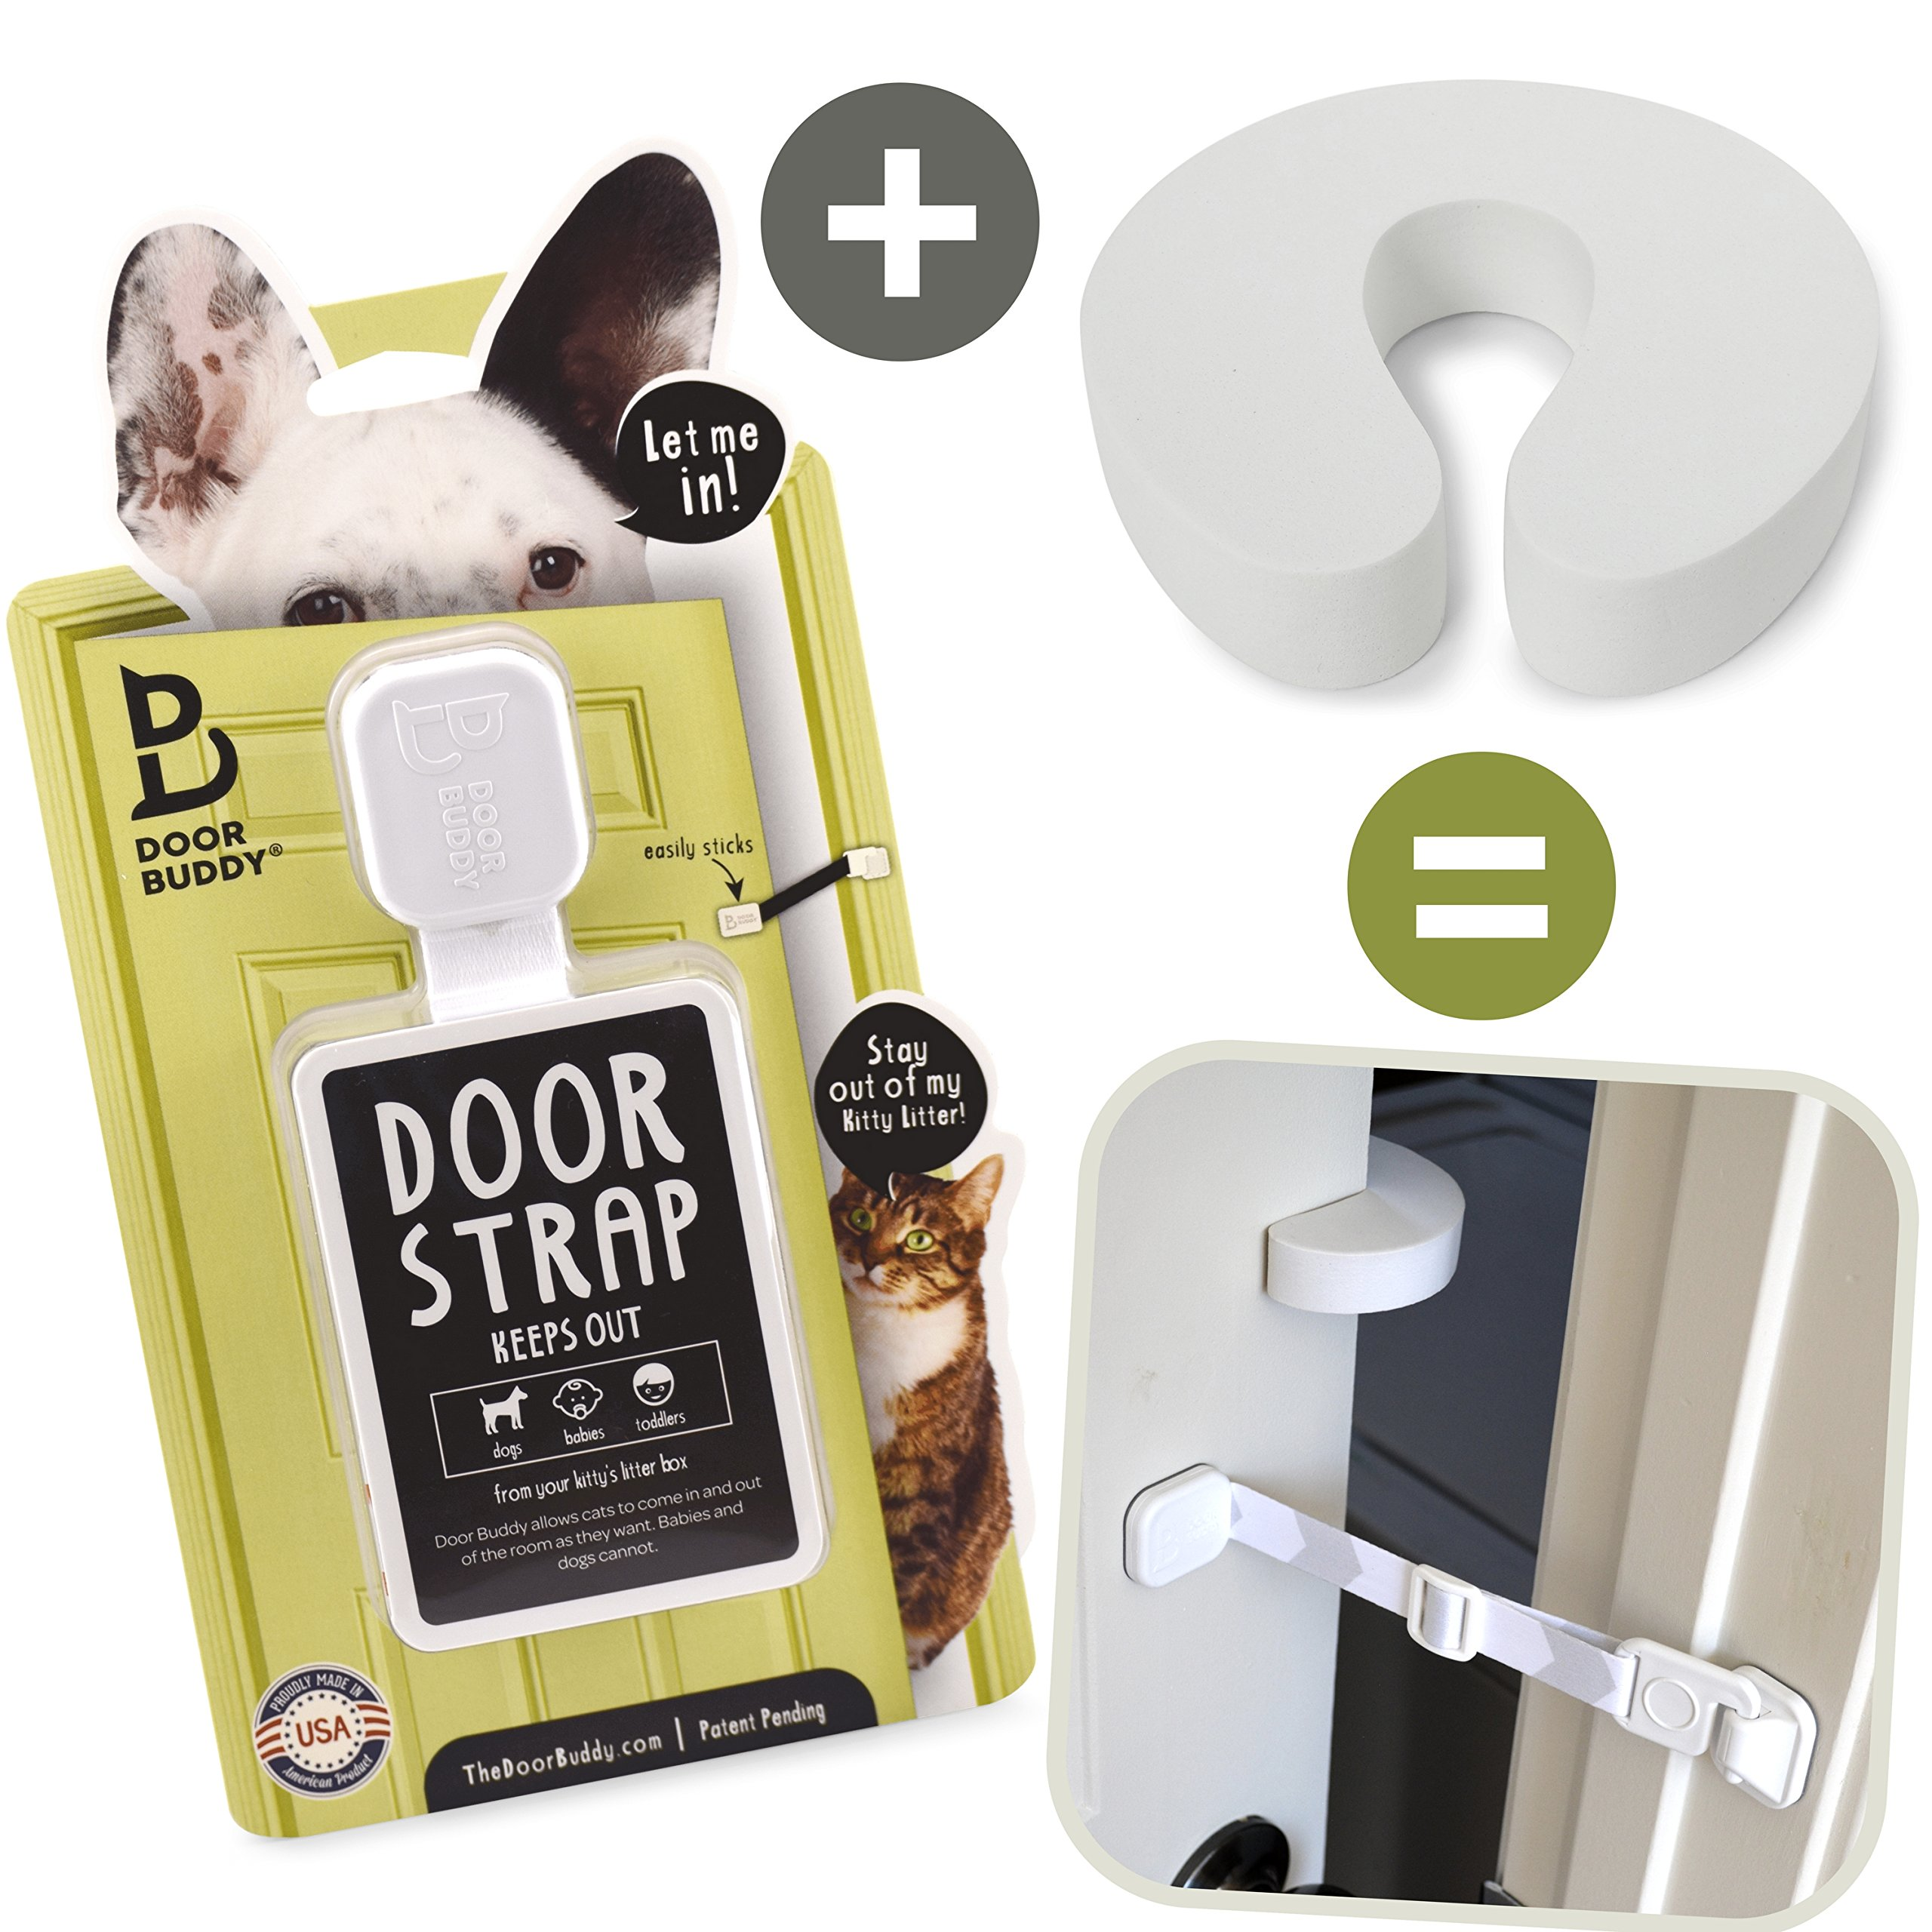 Door Buddy Door Latch Plus Door Stop. Keep Dog Out of Litter Box and Prevent